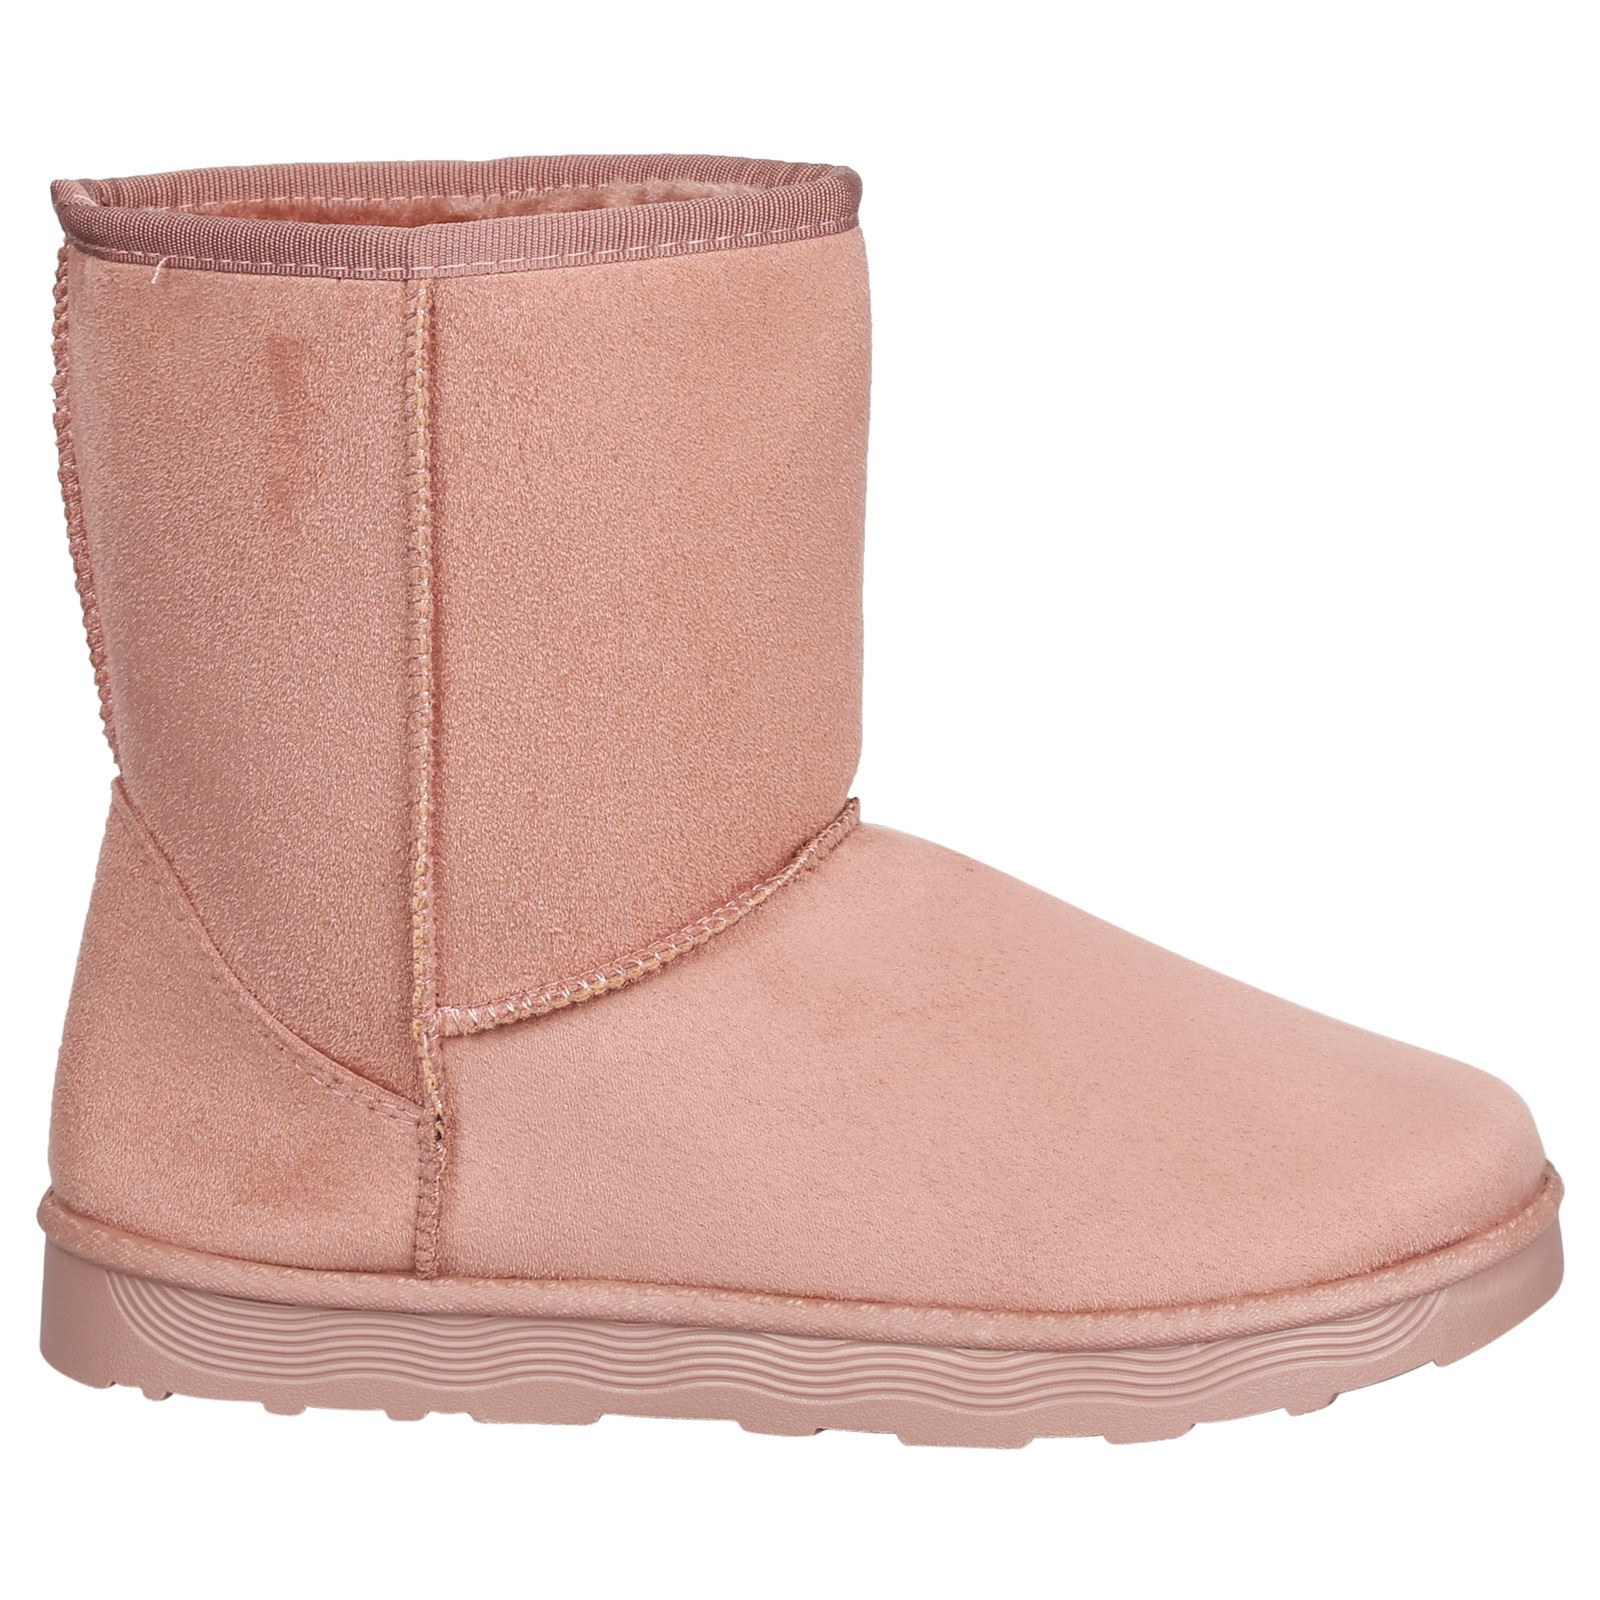 Paisleigh-Womens-Platfrom-Flat-Fur-Lined-Pull-On-Snug-Snow-Boots-Casual-Ladies thumbnail 18